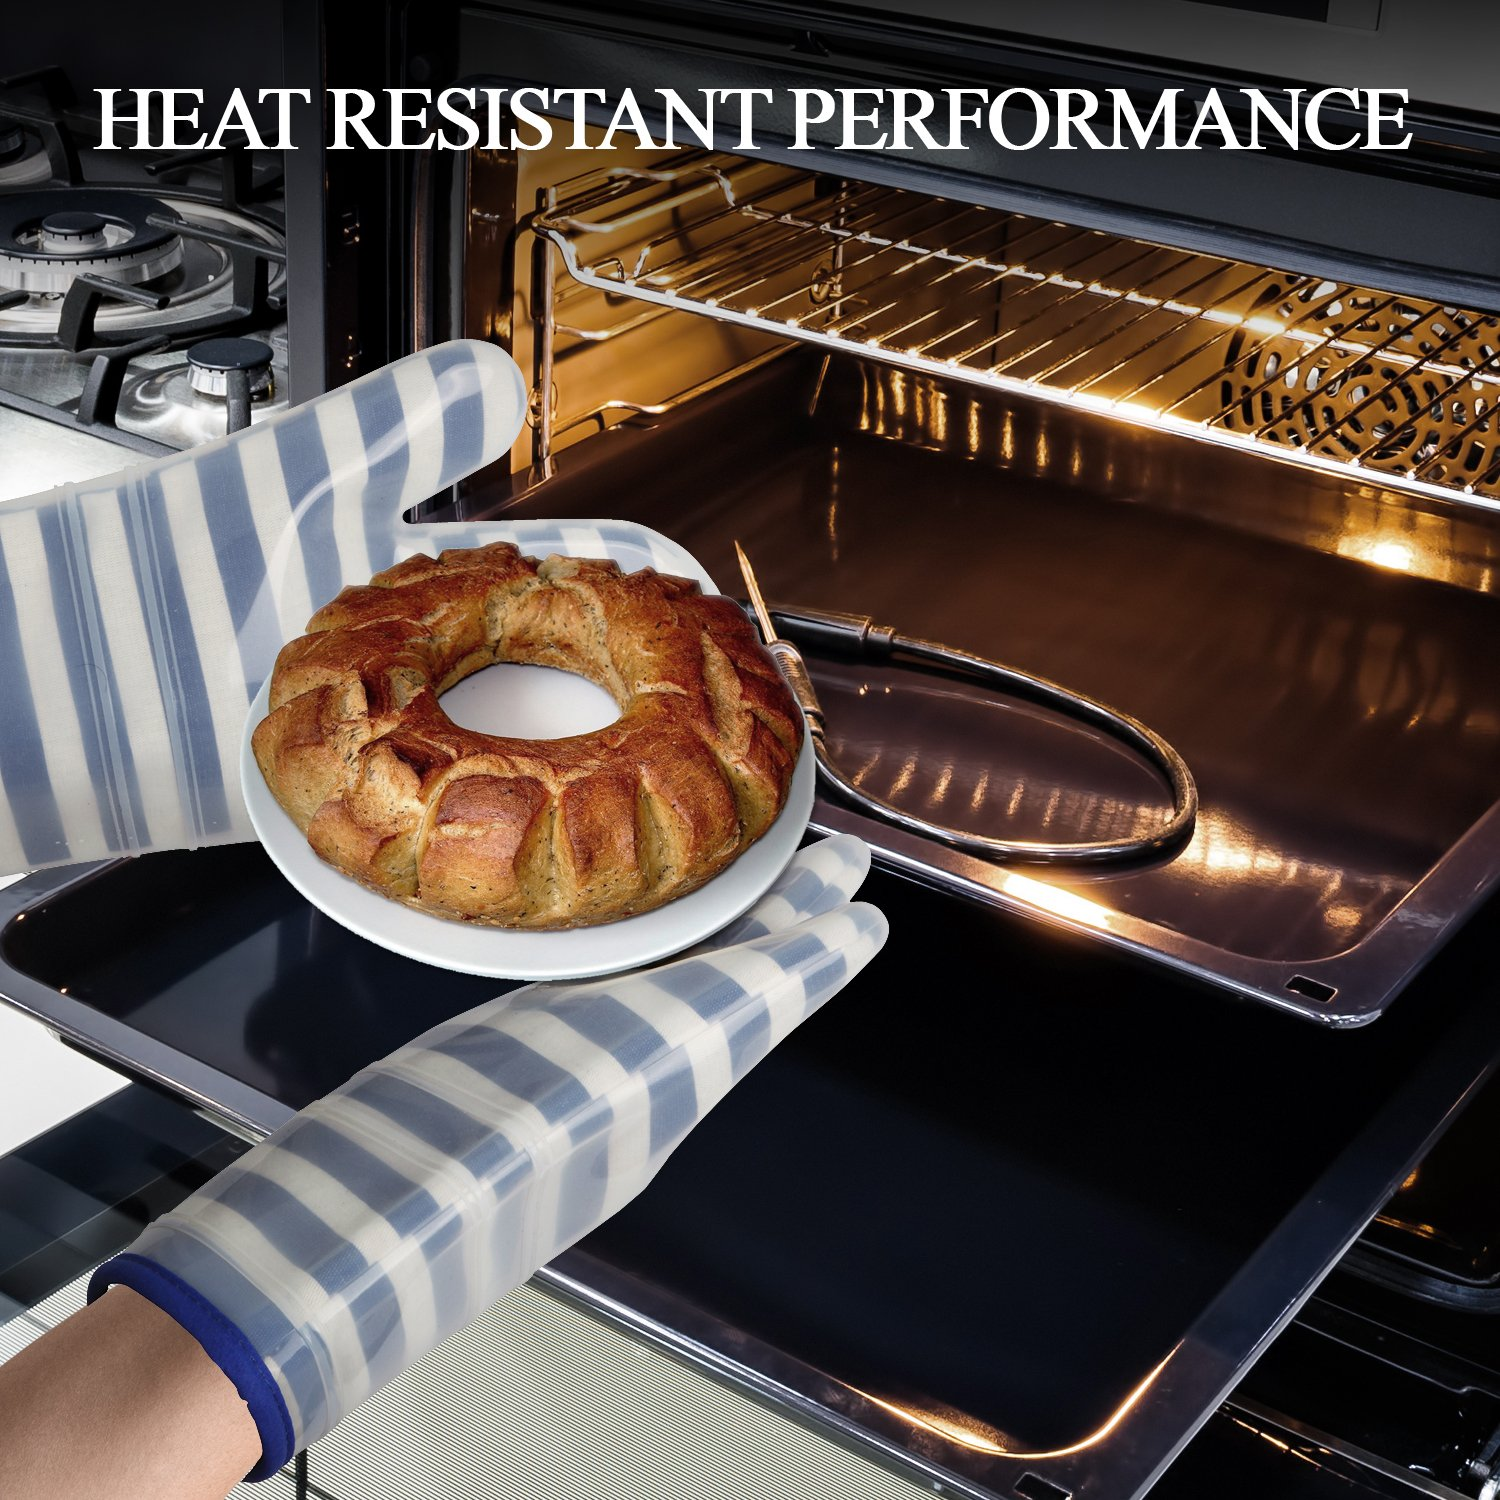 ANSMORE Oven Mitts, Heat Resistant to 572℉ and Waterproof, with Transparent Clear Silicone Shell and Nice Stripe Printing Cotton lining-Set of 2 (Blue) by ANSMORE (Image #4)